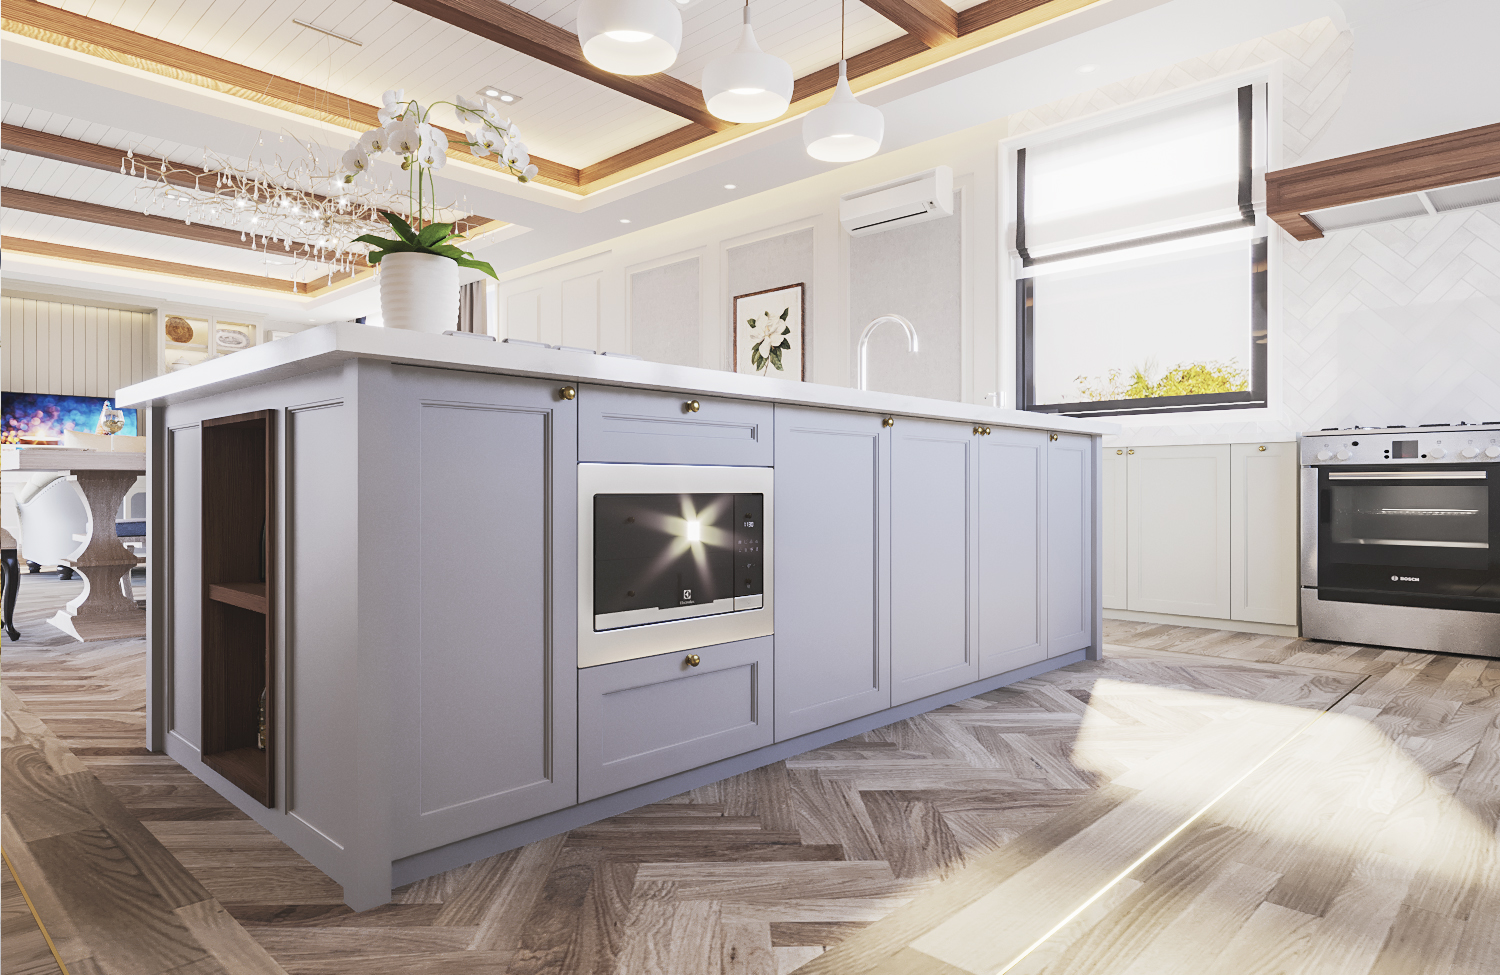 S House - Pantry (Look 1)